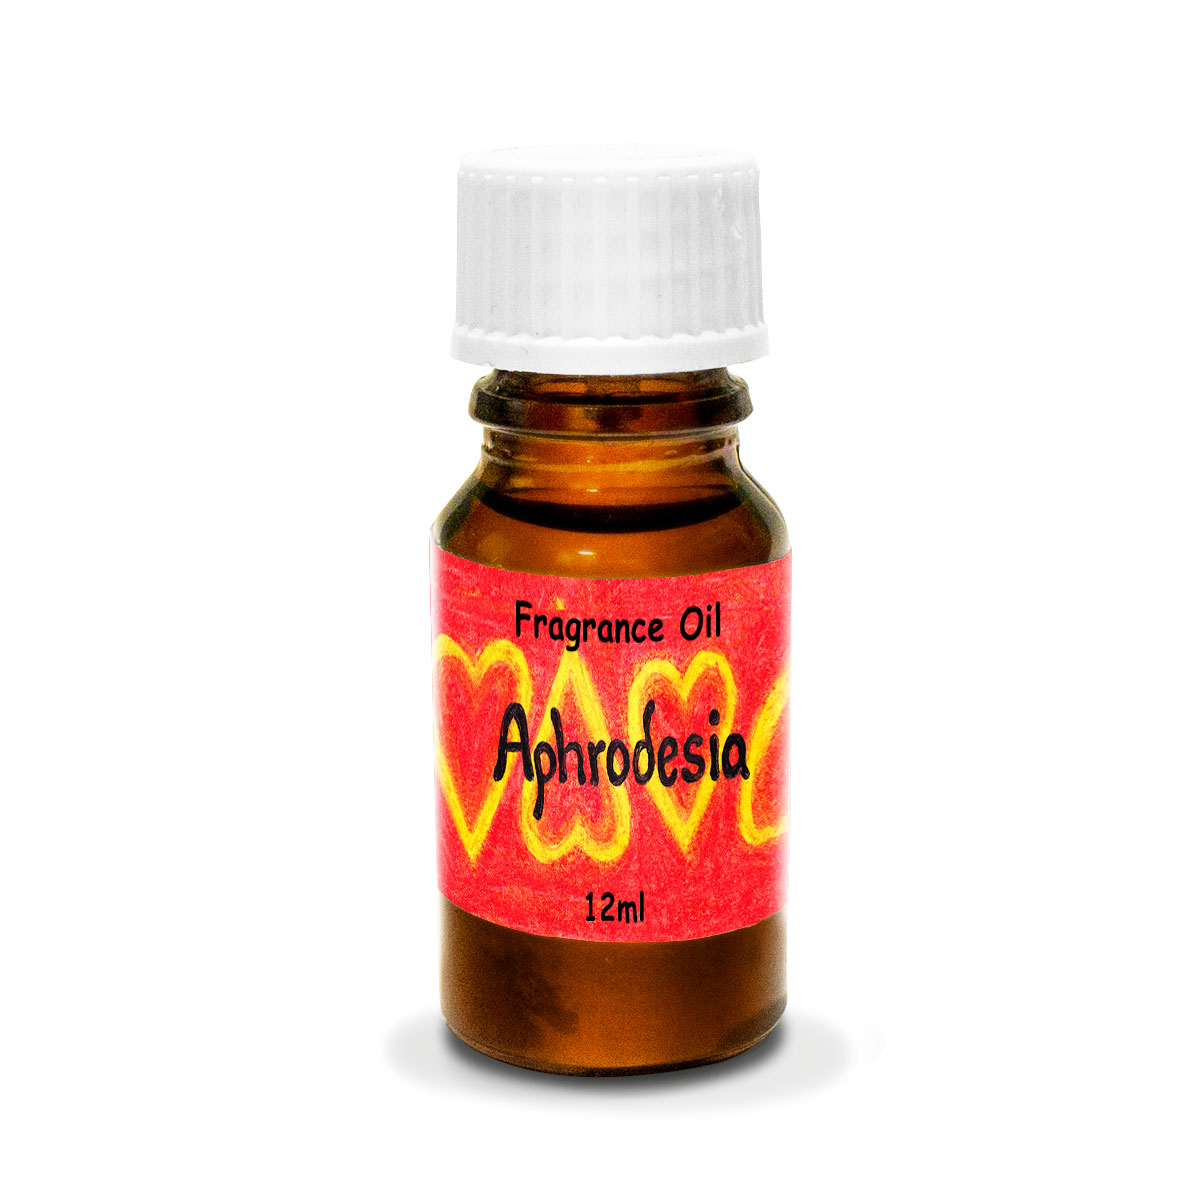 Aphrodesia Fragrance Oil